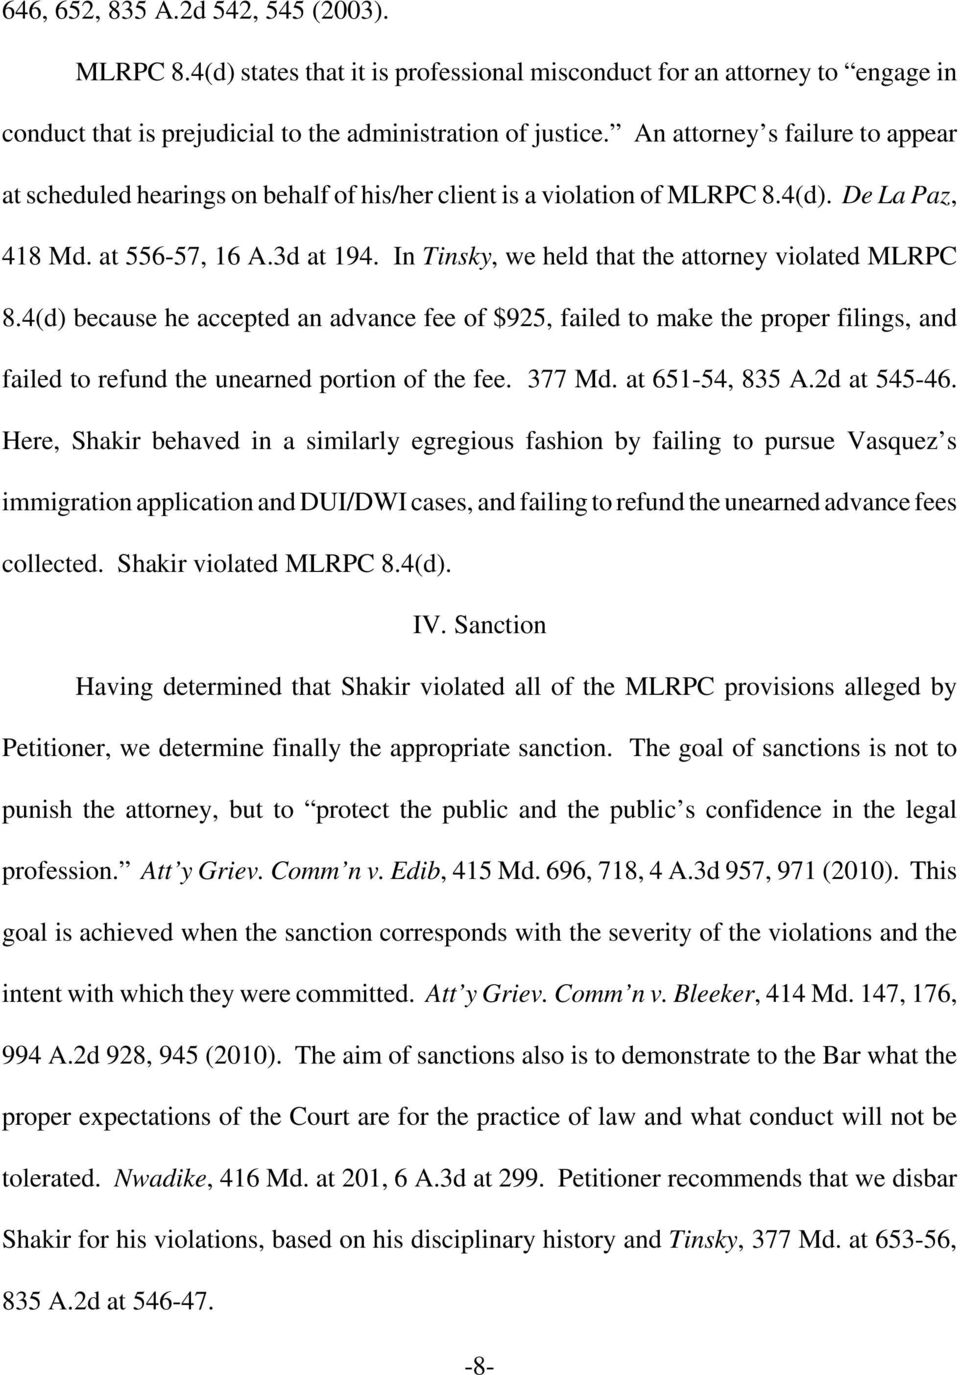 In Tinsky, we held that the attorney violated MLRPC 8.4(d) because he accepted an advance fee of $925, failed to make the proper filings, and failed to refund the unearned portion of the fee. 377 Md.